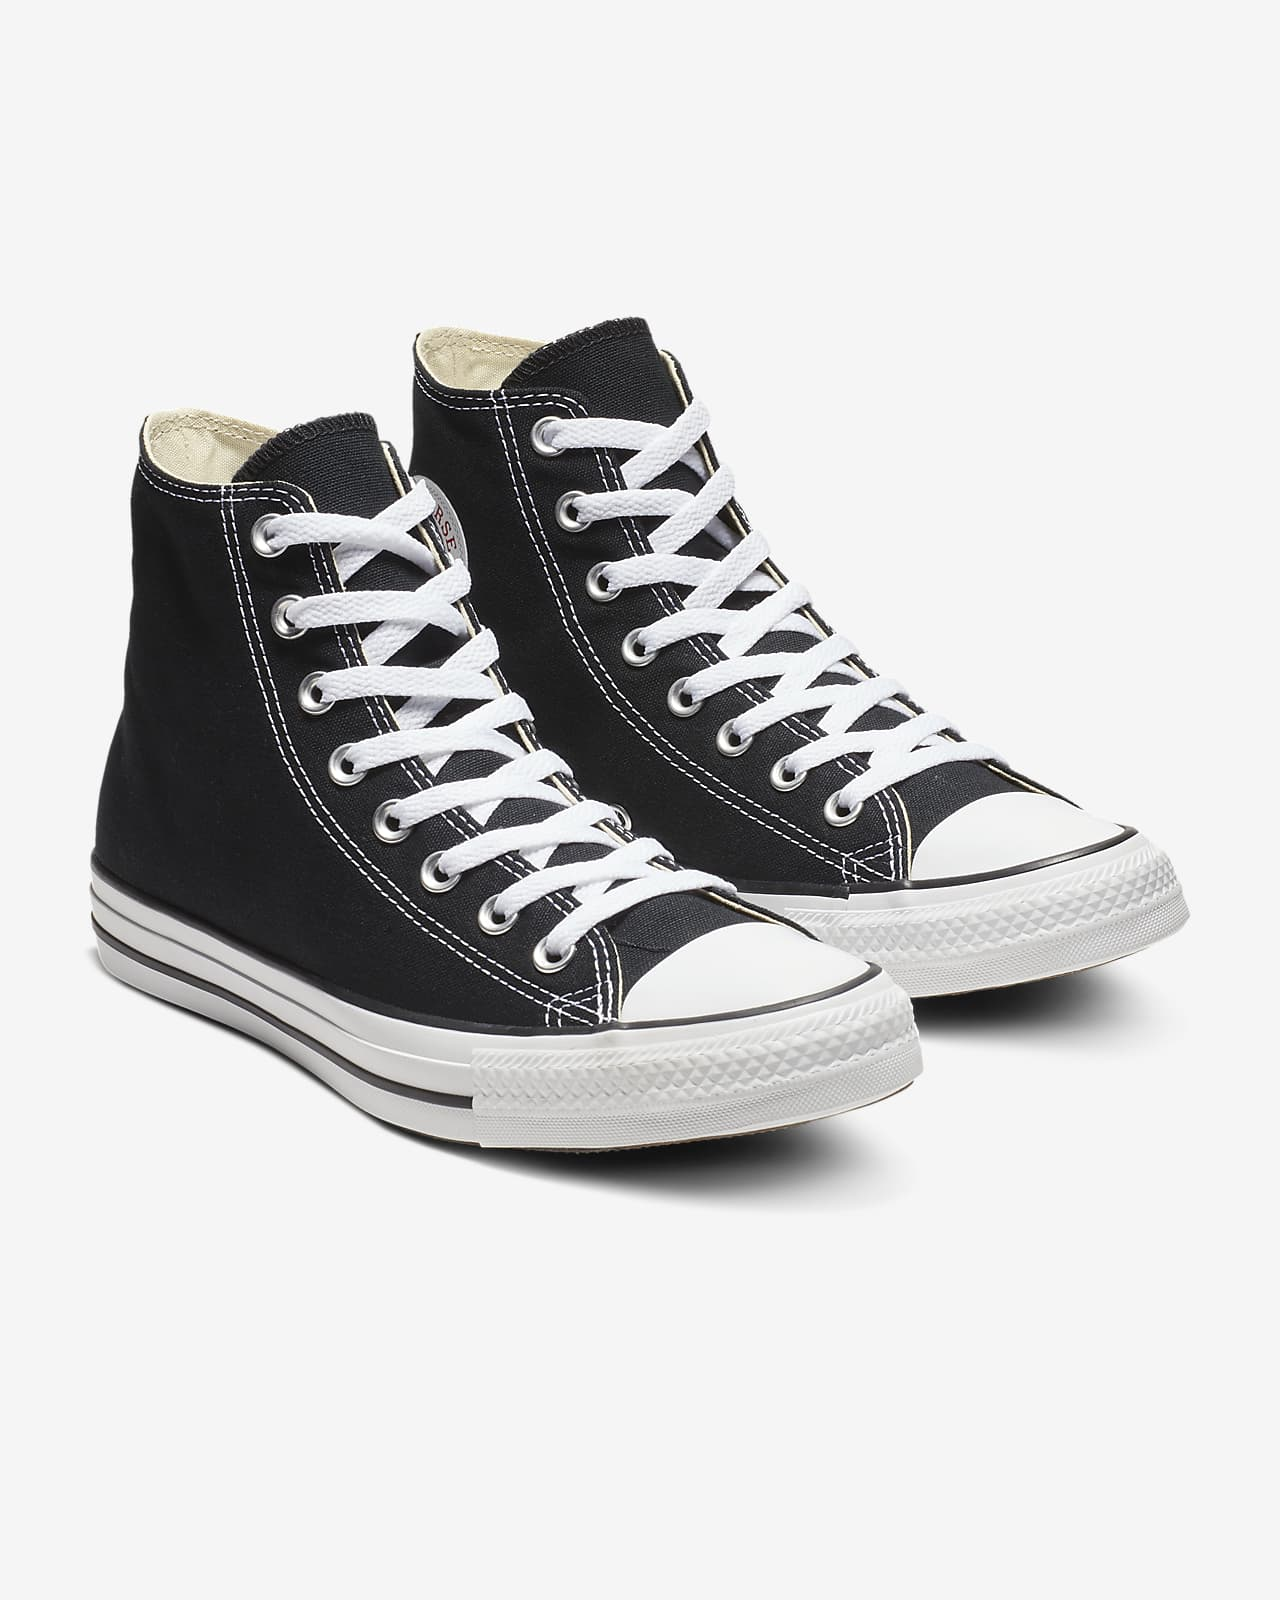 Converse Hi Top All Star Chuck Taylor Black White Mens Womens Shoes All Sizes